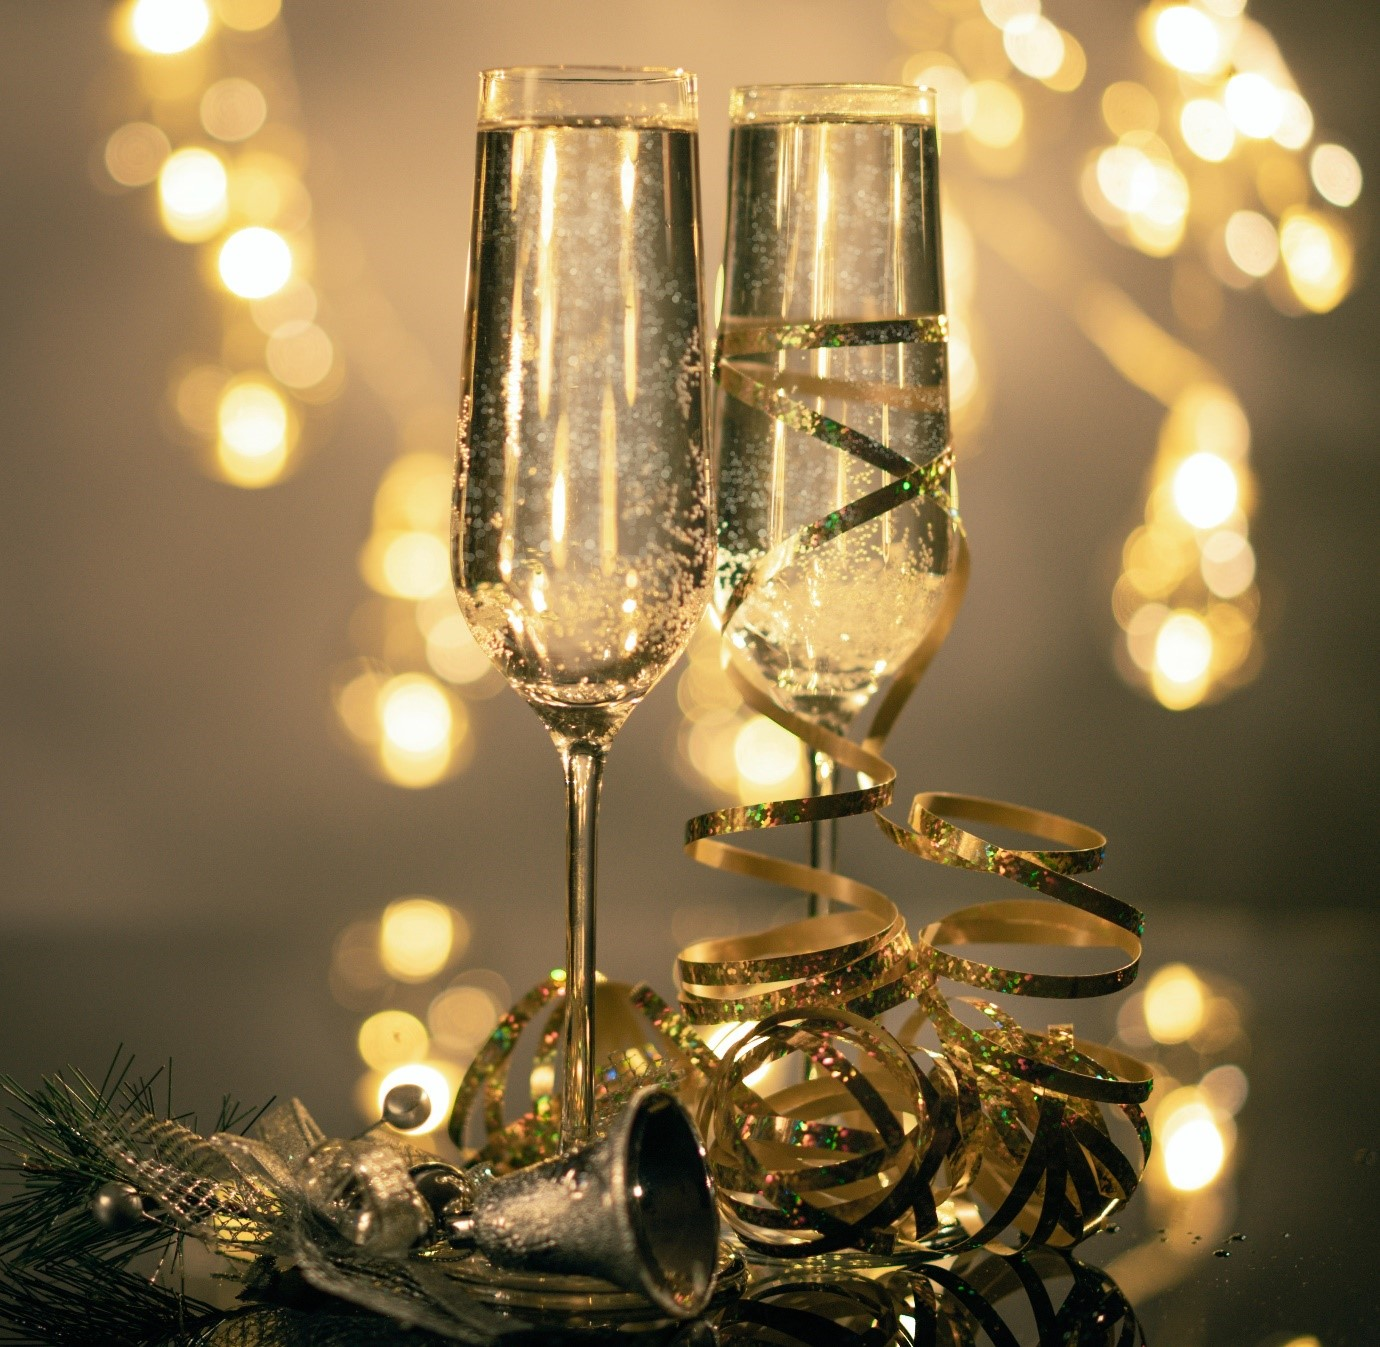 Choosing the Perfect Champagne this Christmas